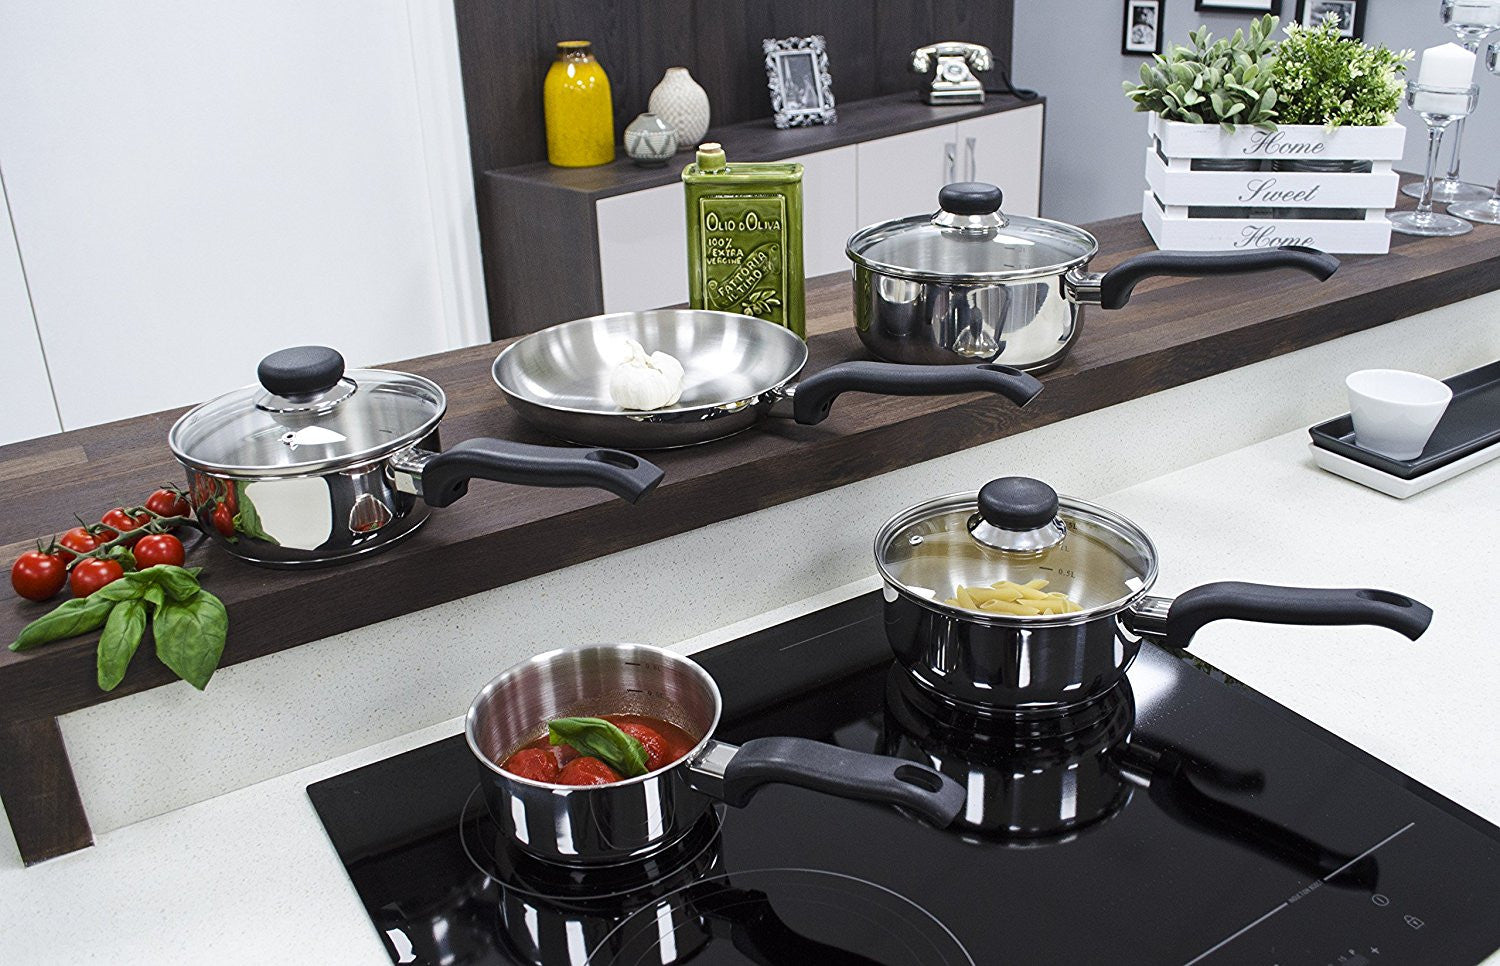 Ready Steady Cook Bistro Stainless Steel Cookware Set, Silver and Black